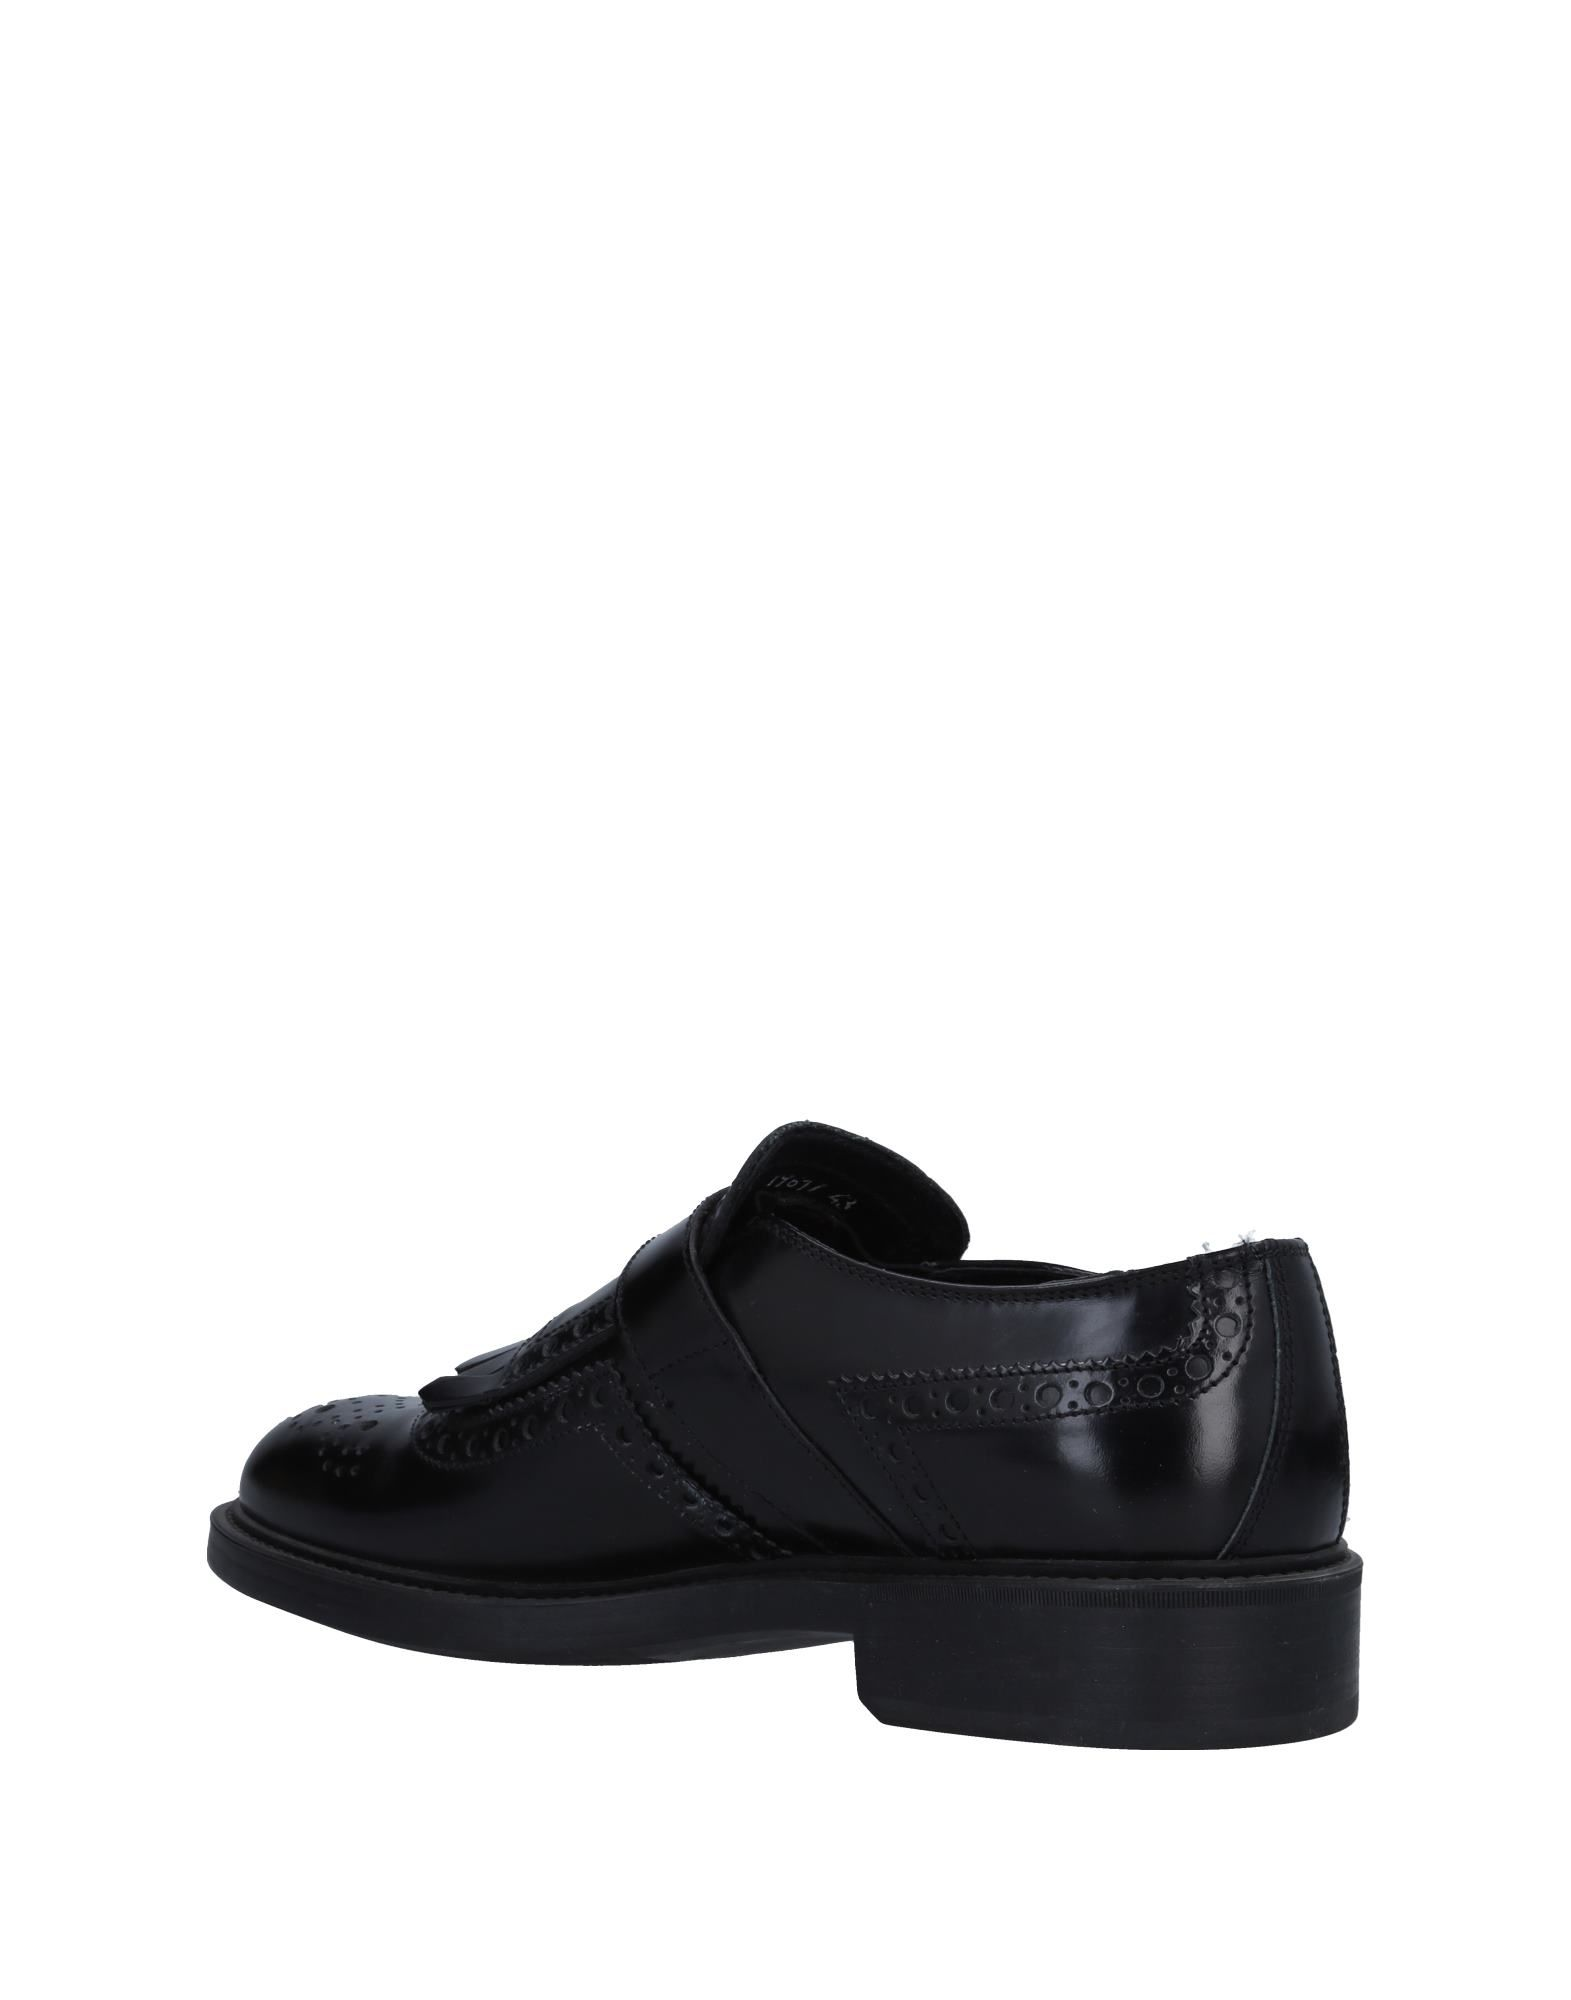 Antica Cuoieria Loafers Loafers - Men Antica Cuoieria Loafers Loafers online on  Canada - 11496903TC 6a6a09